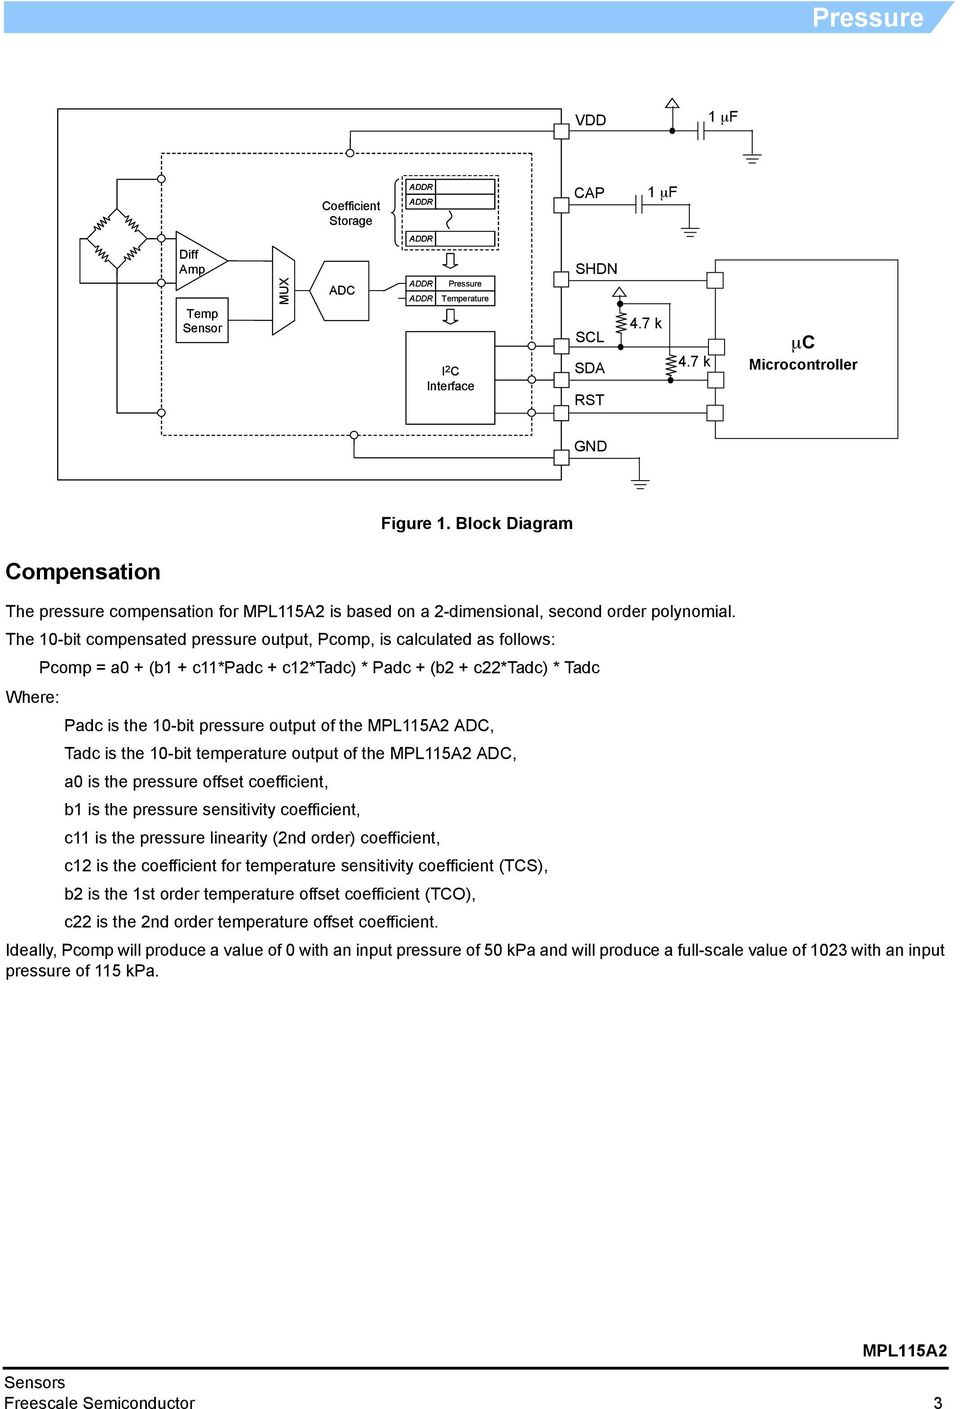 The 10-bit compensated pressure output, Pcomp, is calculated as follows: Pcomp = a0 + (b1 + c11*padc + c12*tadc) * Padc + (b2 + c22*tadc) * Tadc Where: Padc is the 10-bit pressure output of the ADC,